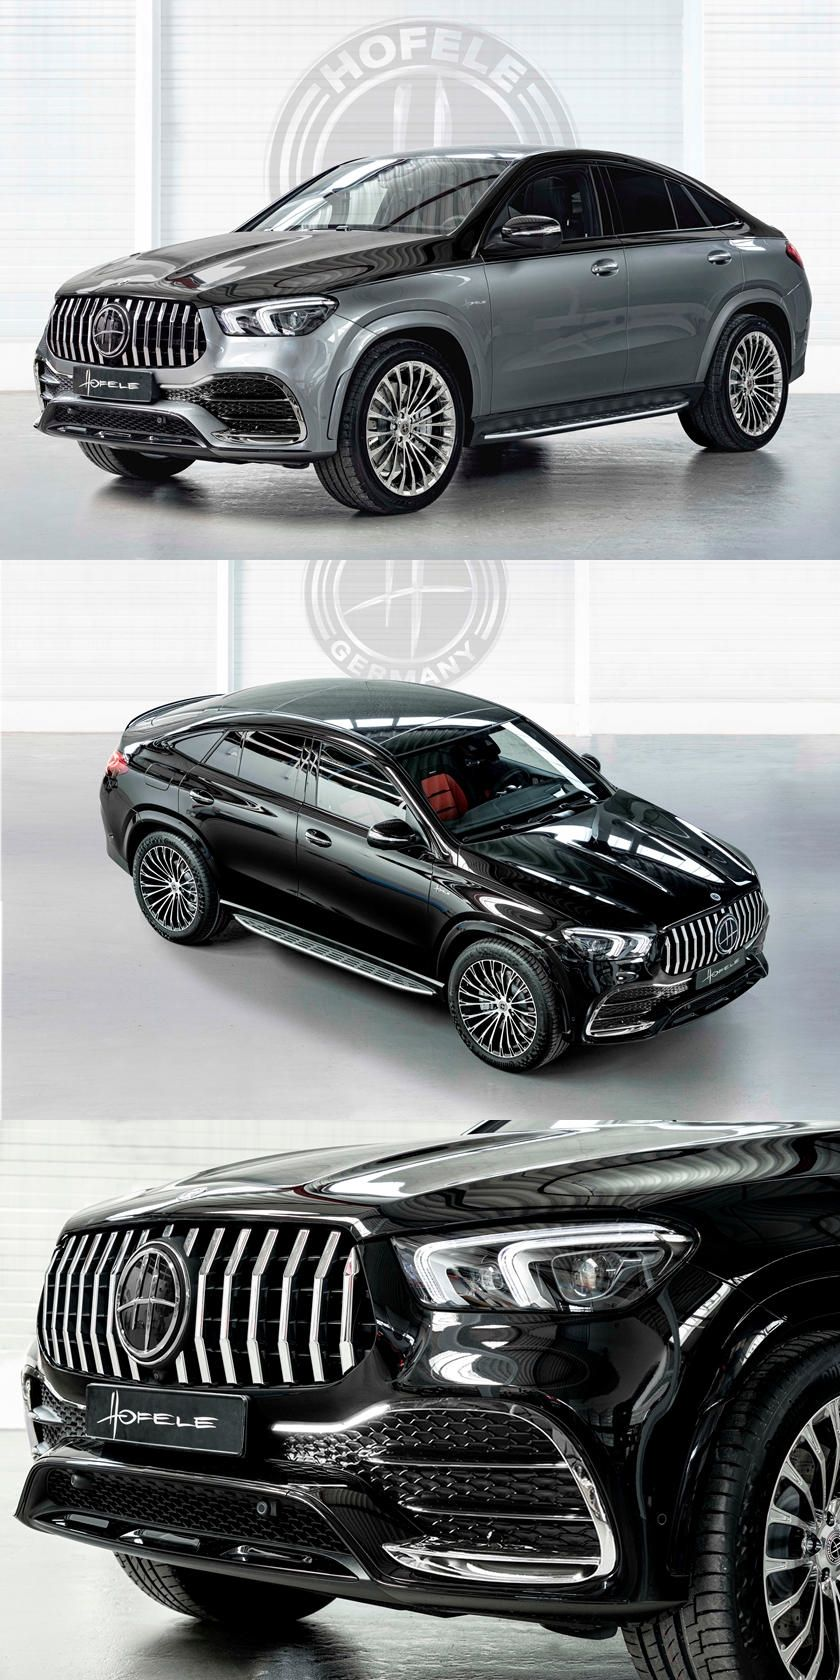 Mercedes Gle Coupe Blends Amg And Maybach Designs Into One Hofele Has Built Another Fine Creation Mercedes Amg Car Mercedes Benz Gle Coupe